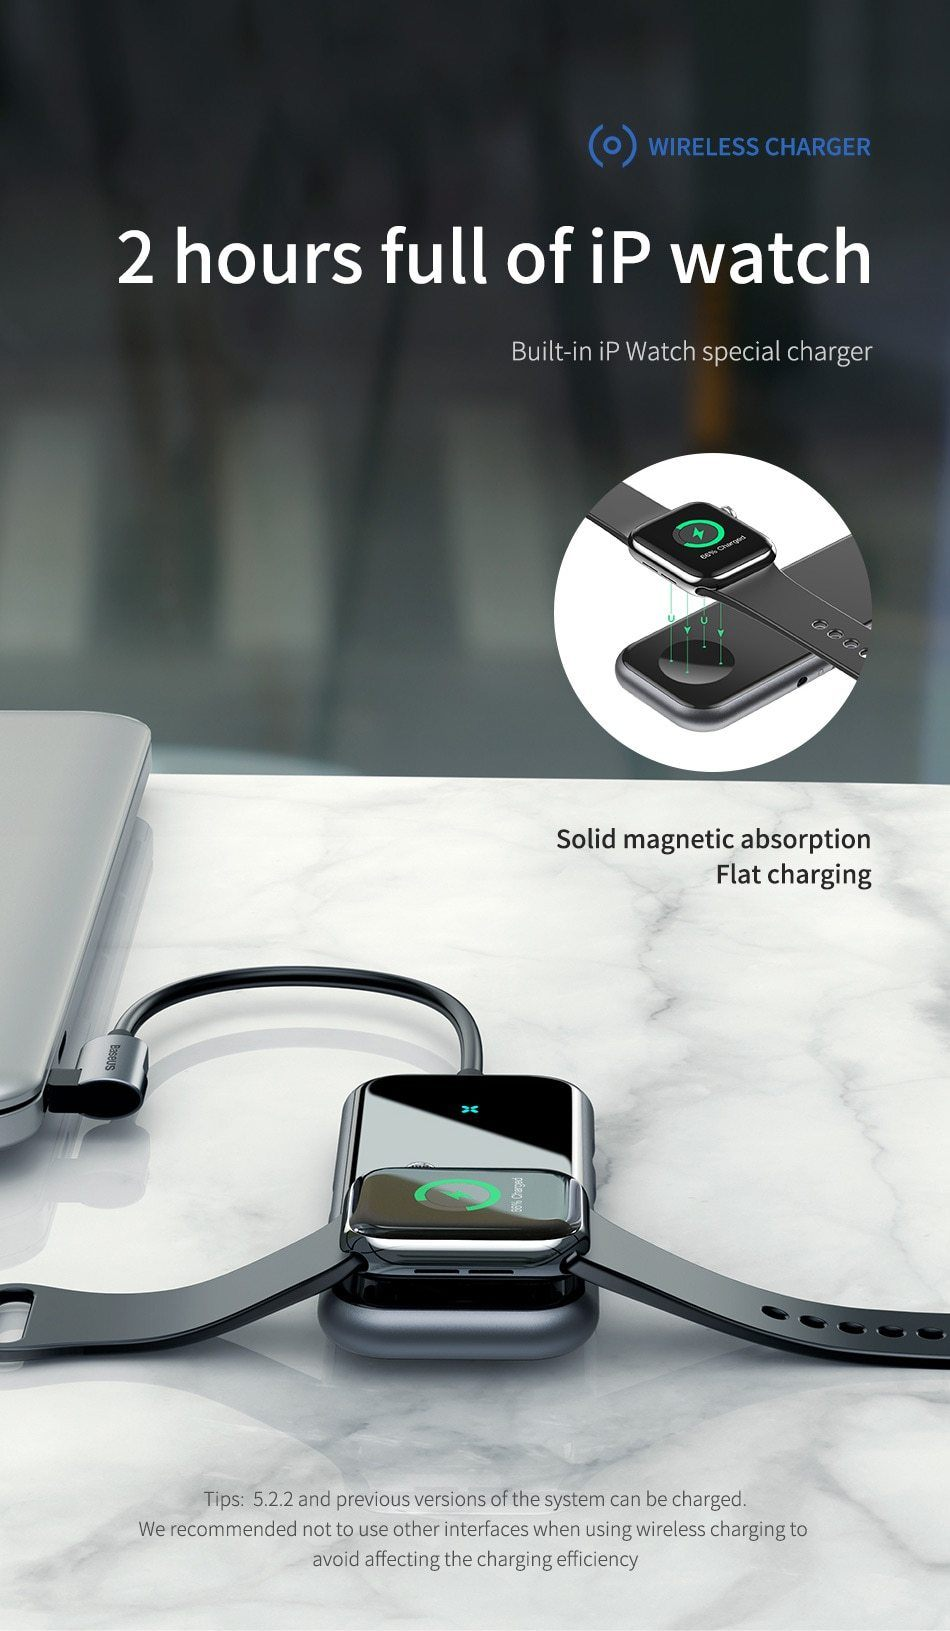 USB Type C HUB Plus iWatch Wireless Changer